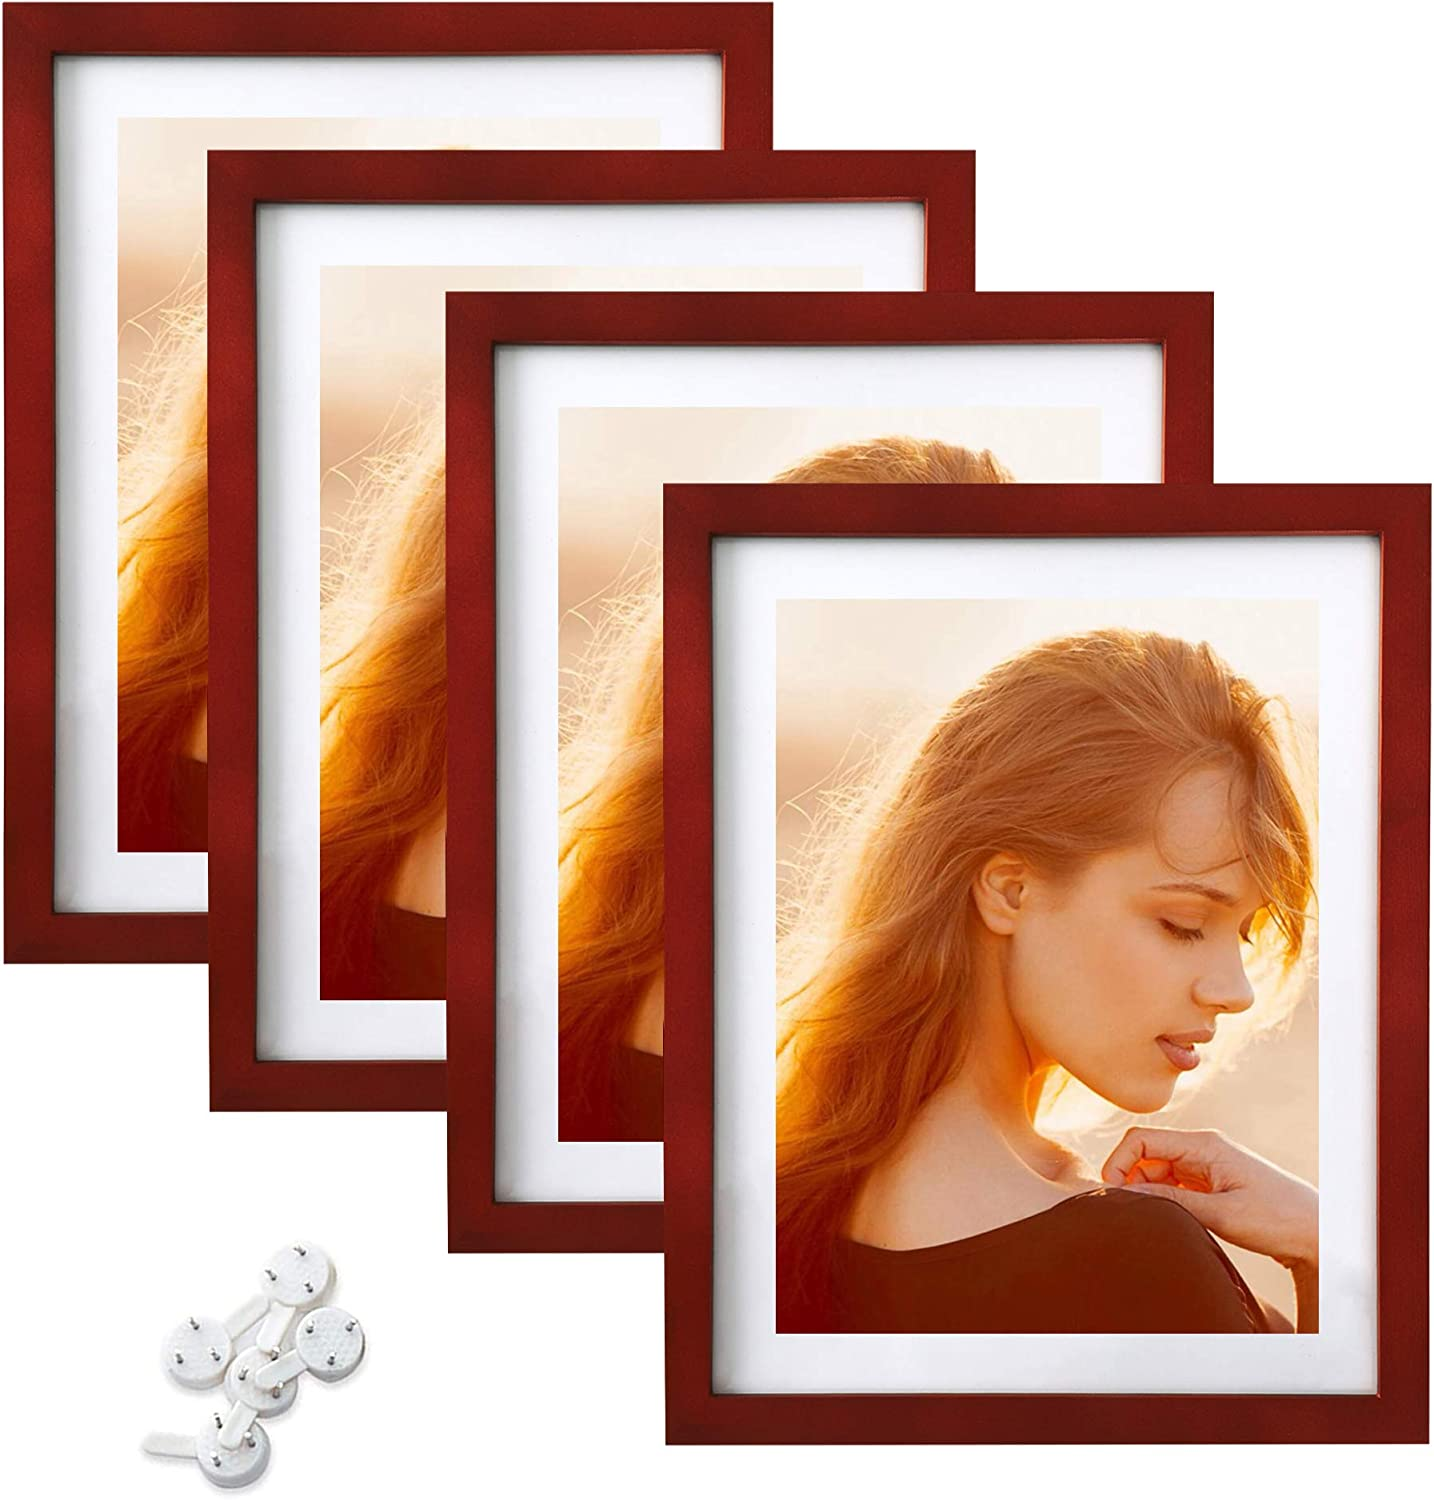 ABZQH Reservation 11x14 Picture Frames Max 71% OFF Walnut Dark Brown Set Solid of W 4